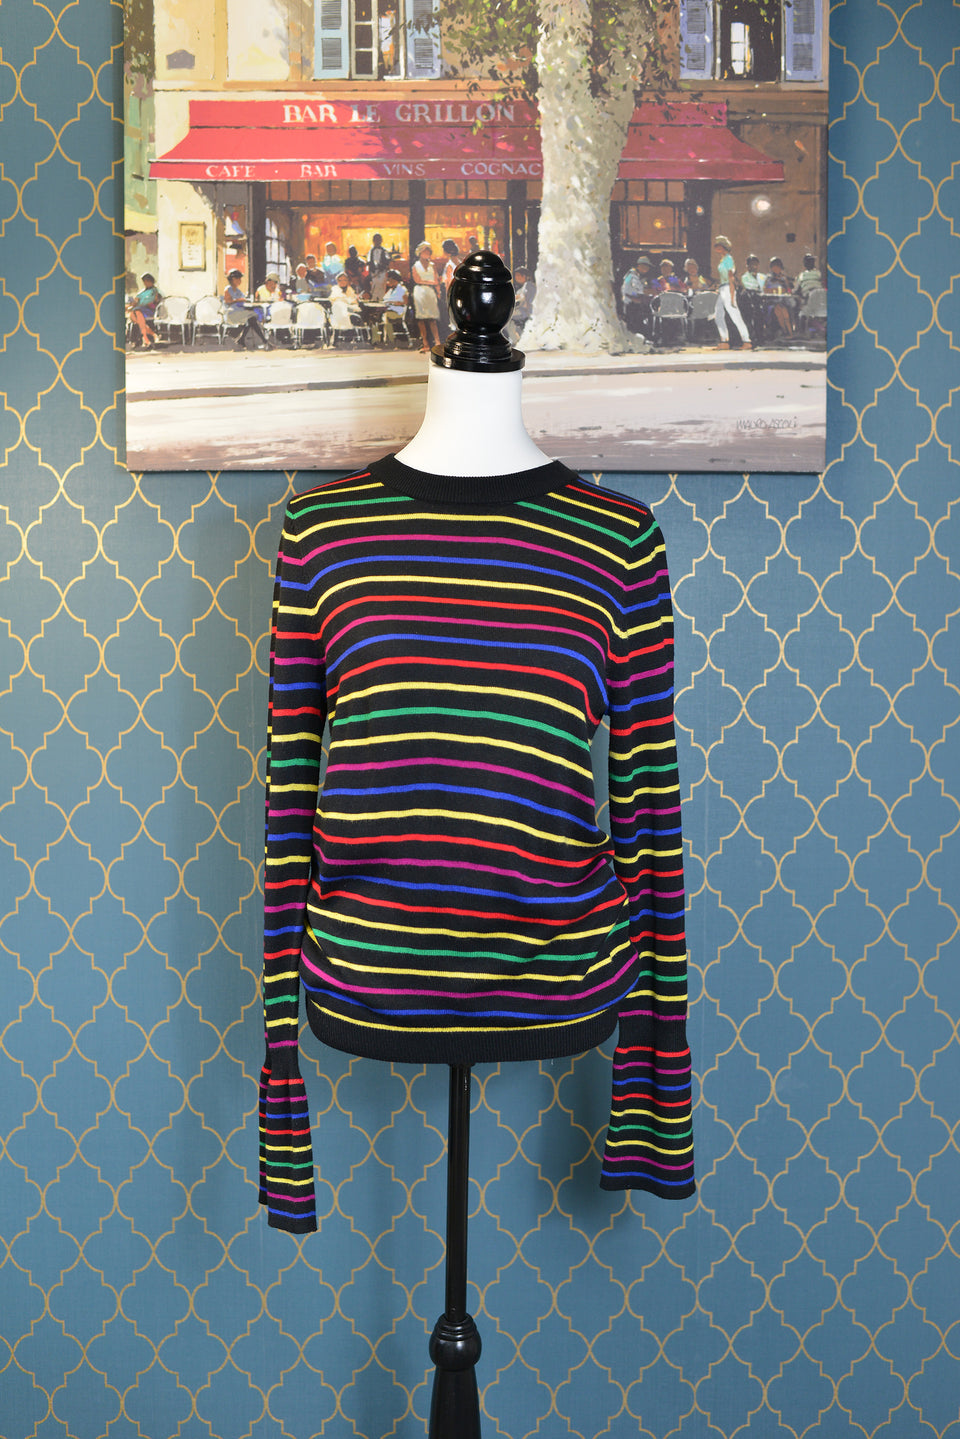 ASOS Women's/Girls' Black Stripy Jumper with Bell Sleeves. Size 10. Pre-loved